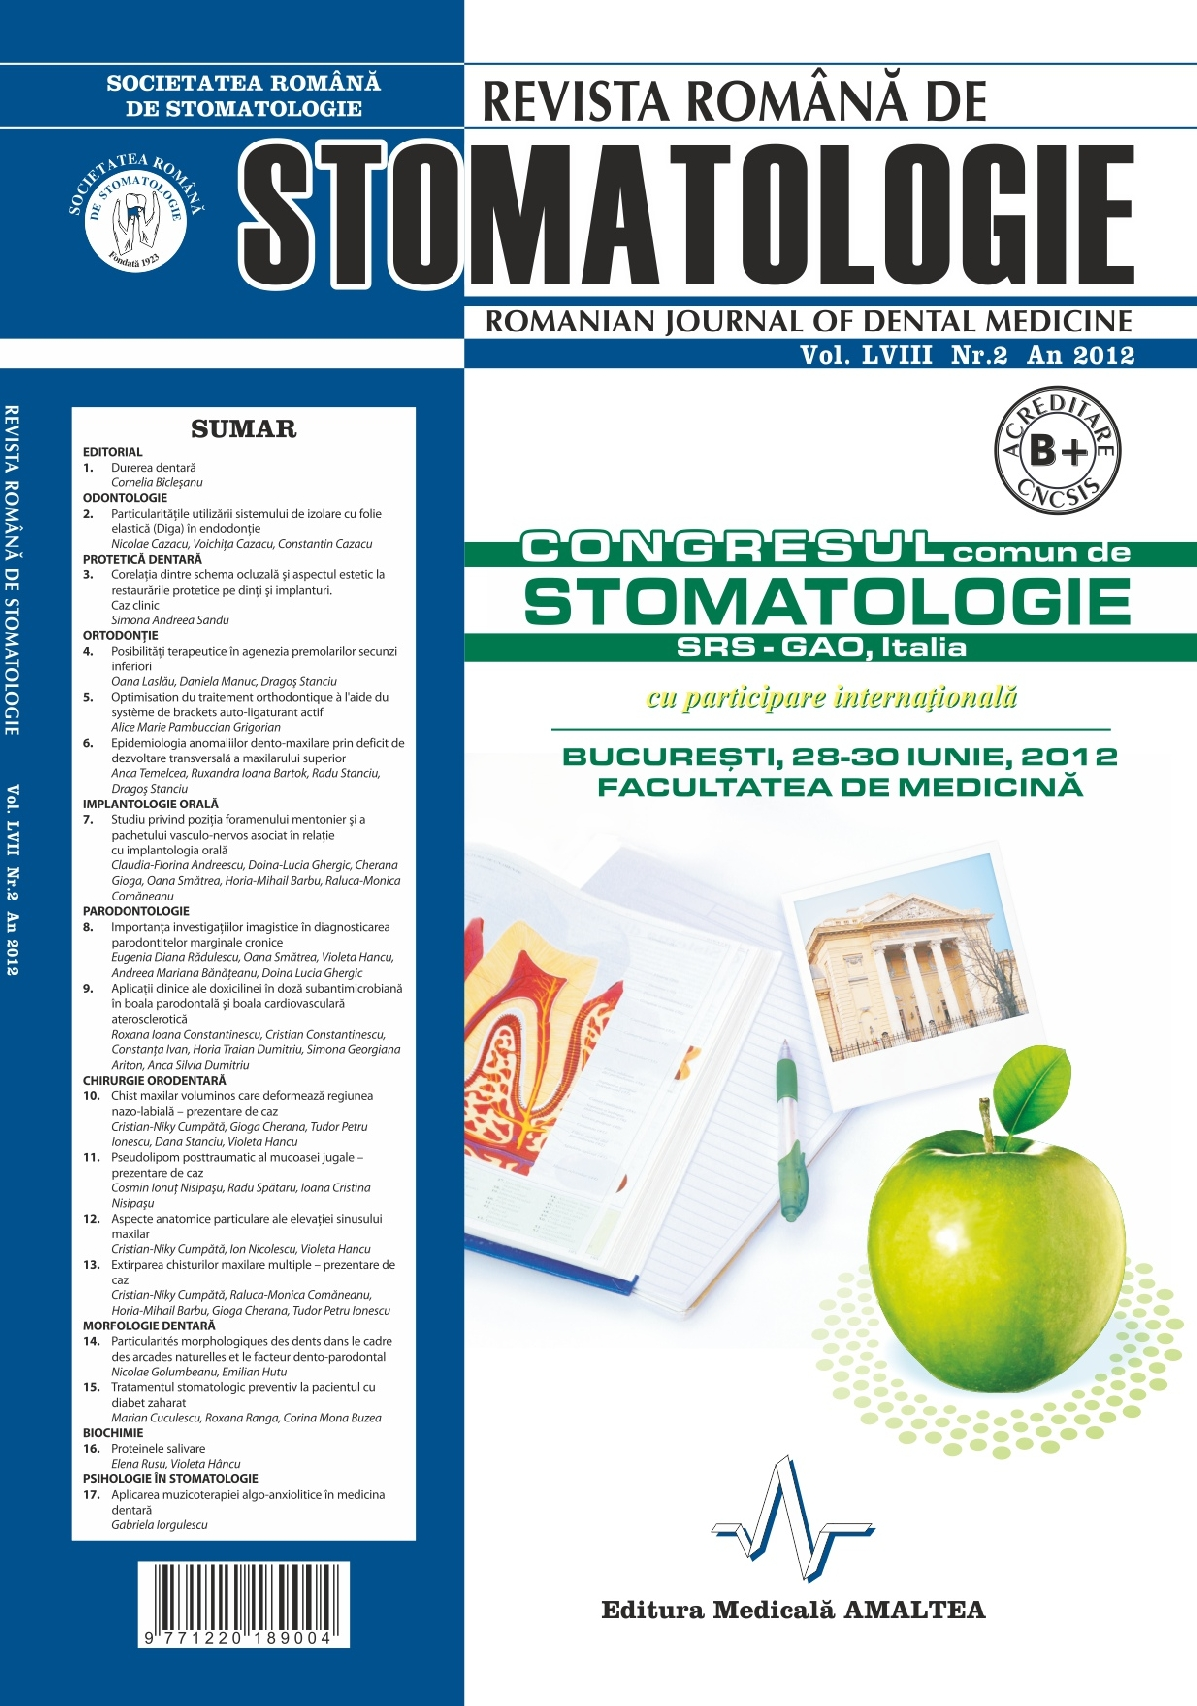 Revista Romana de STOMATOLOGIE - Romanian Journal of Stomatology, Vol. LVIII, Nr. 2, An 2012